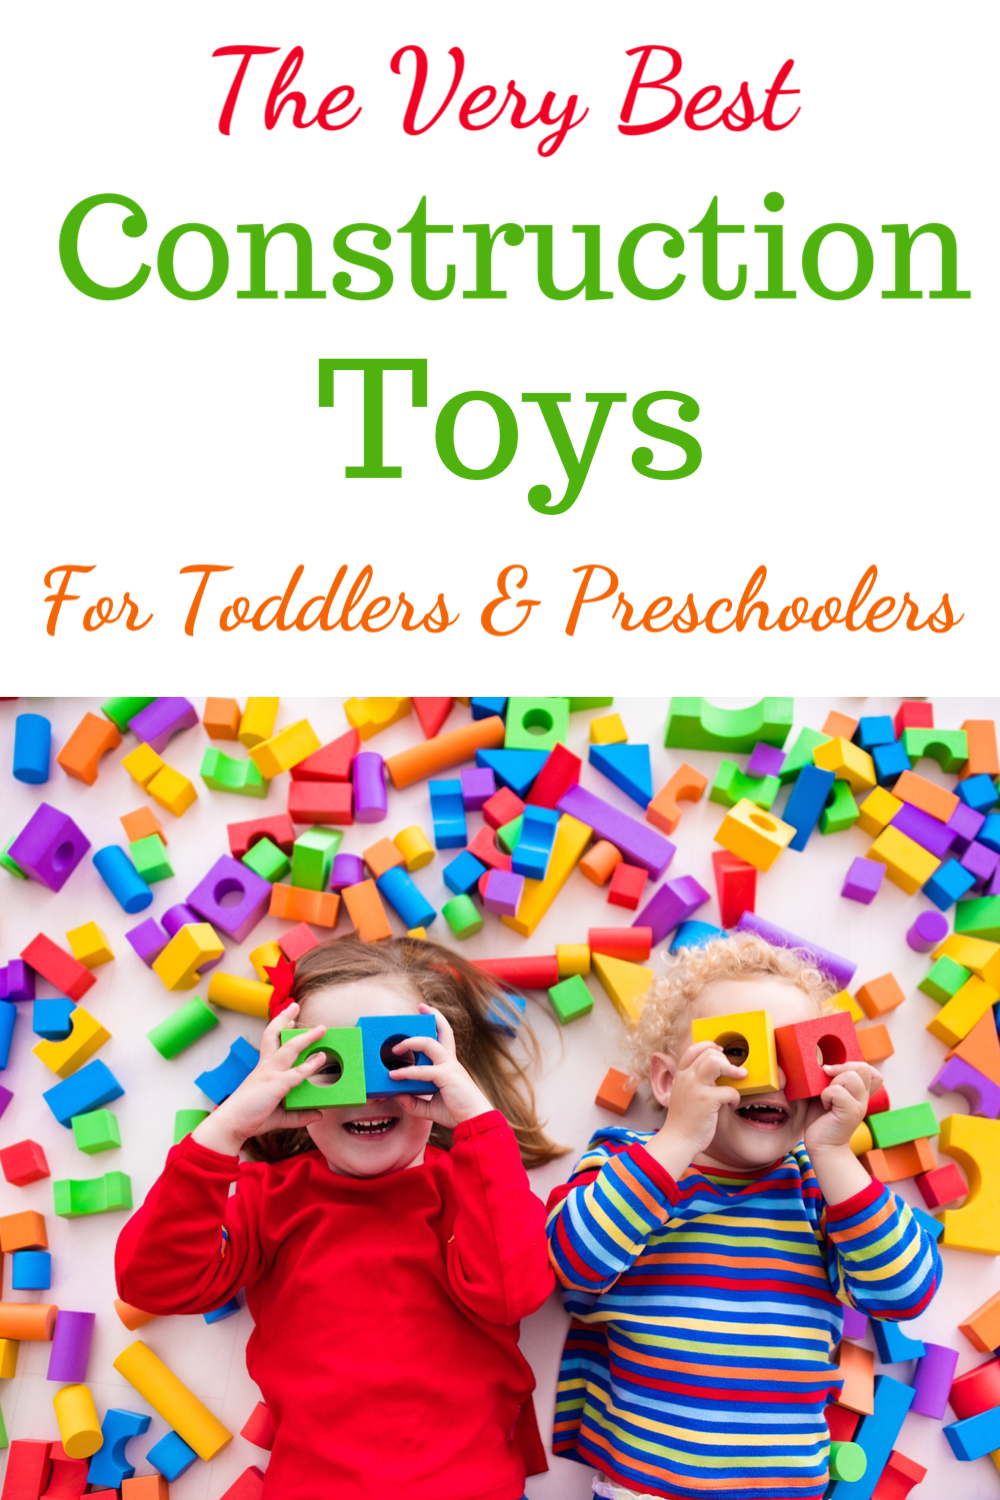 The very best construction toys for toddlers and preschoolers